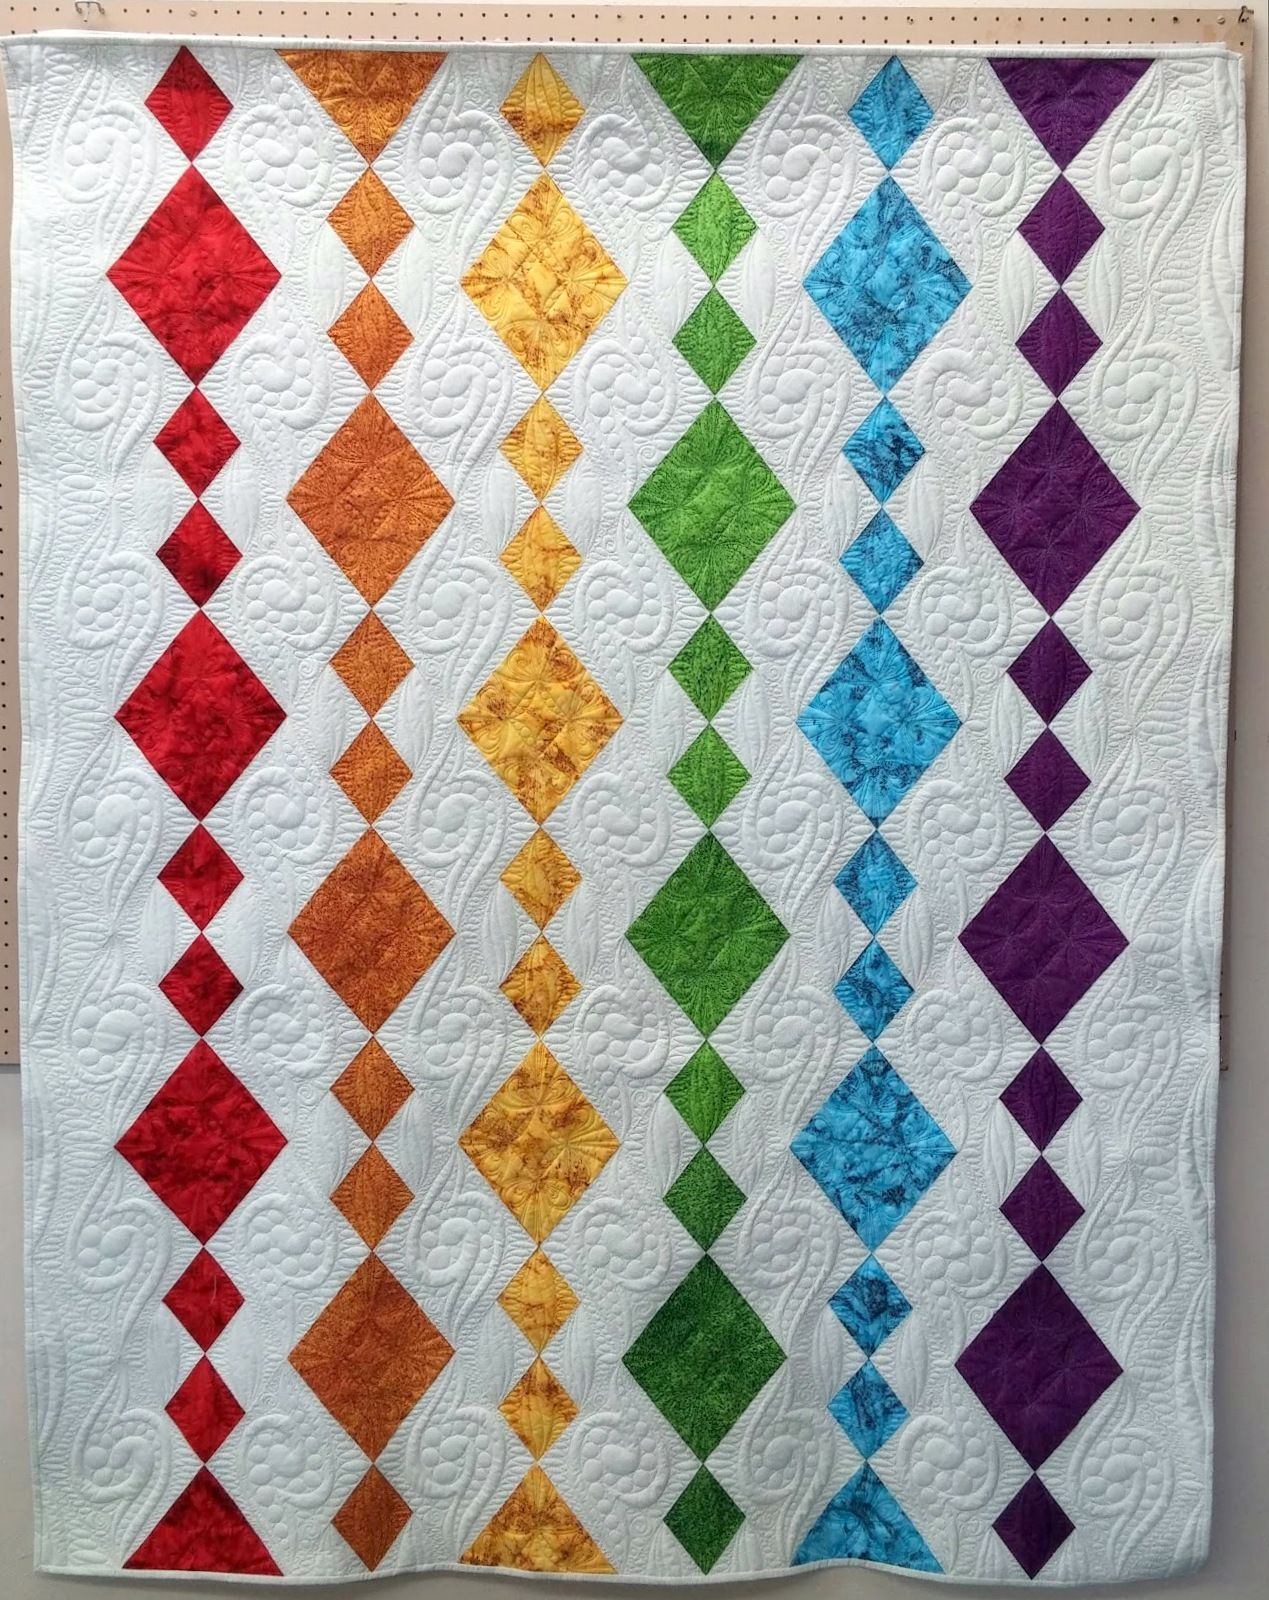 Dangling Diamonds Quilt For Island Batiks Quilted By Marlene Baerg Oddie At Kissed Quilts Rainbow Quilt Quilts Quilt Patterns